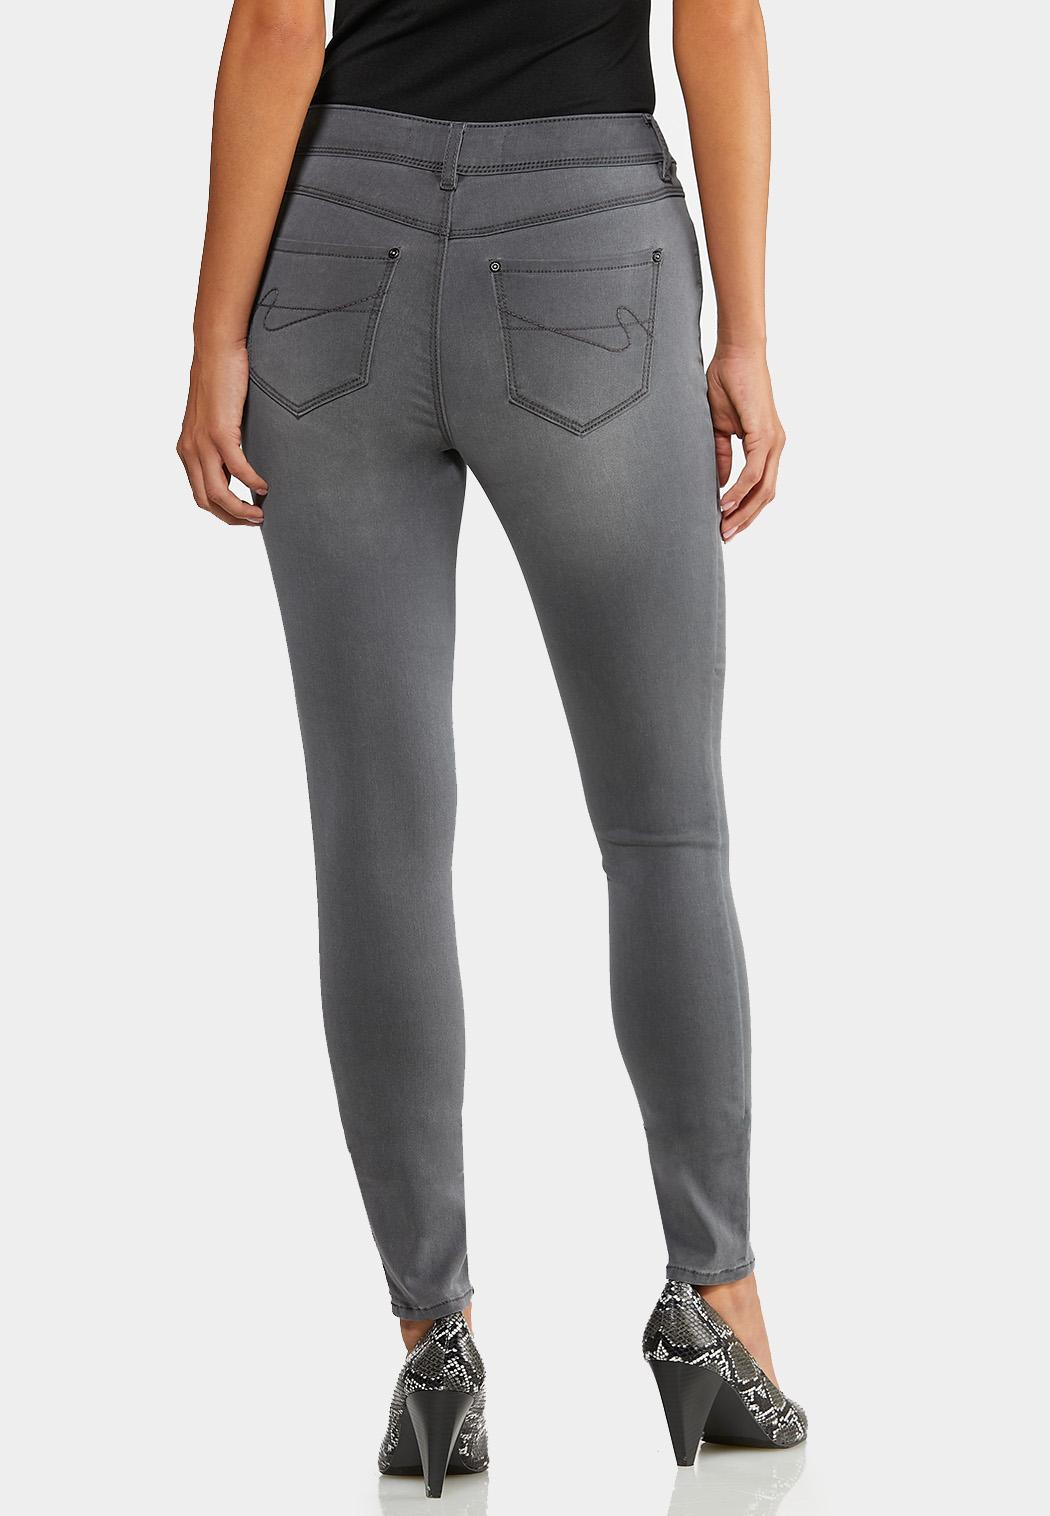 Gray Wash Jeggings (Item #43994167)